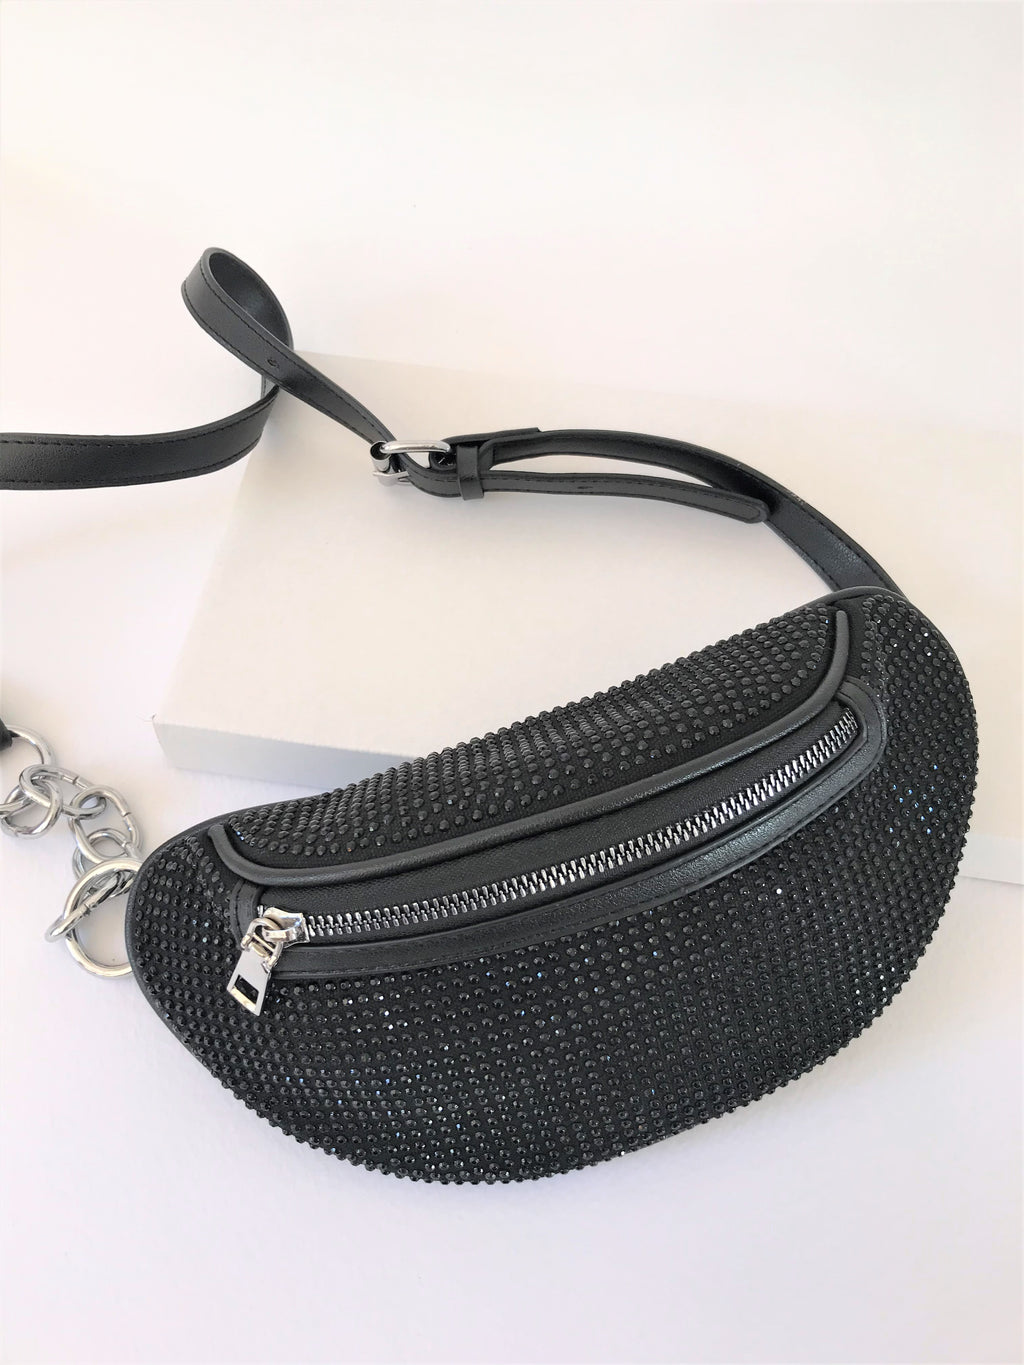 RHINESTONE MOONBAG - BLACK